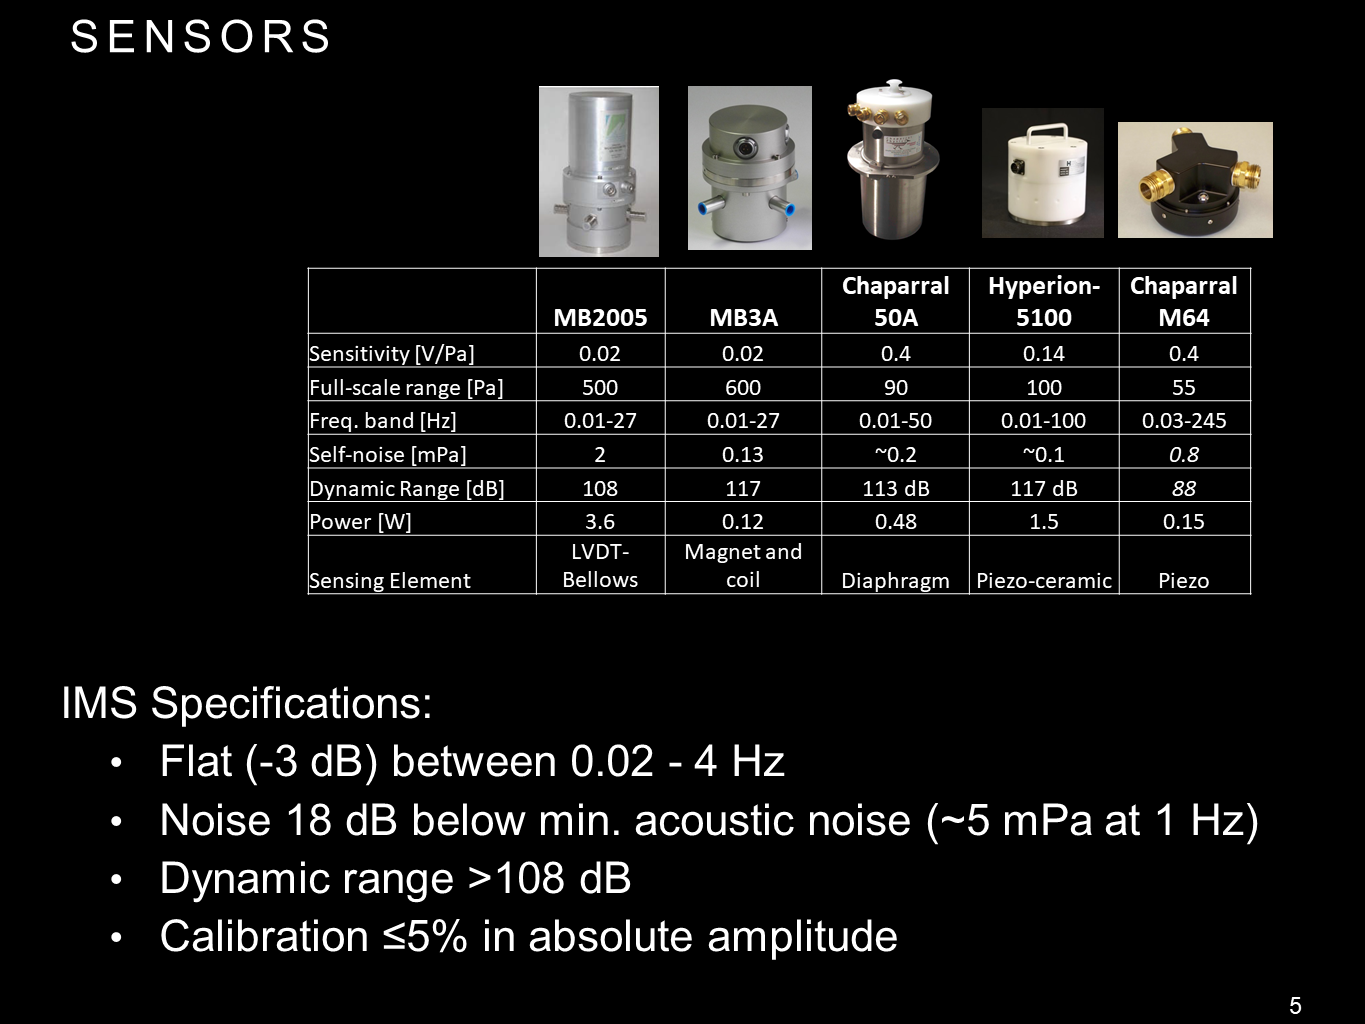 Specifications of the sensors used in the study. IMS Specifications are those required by the Comprehensive Test Ban Treaty Organization for nuclear proliferation monitoring.